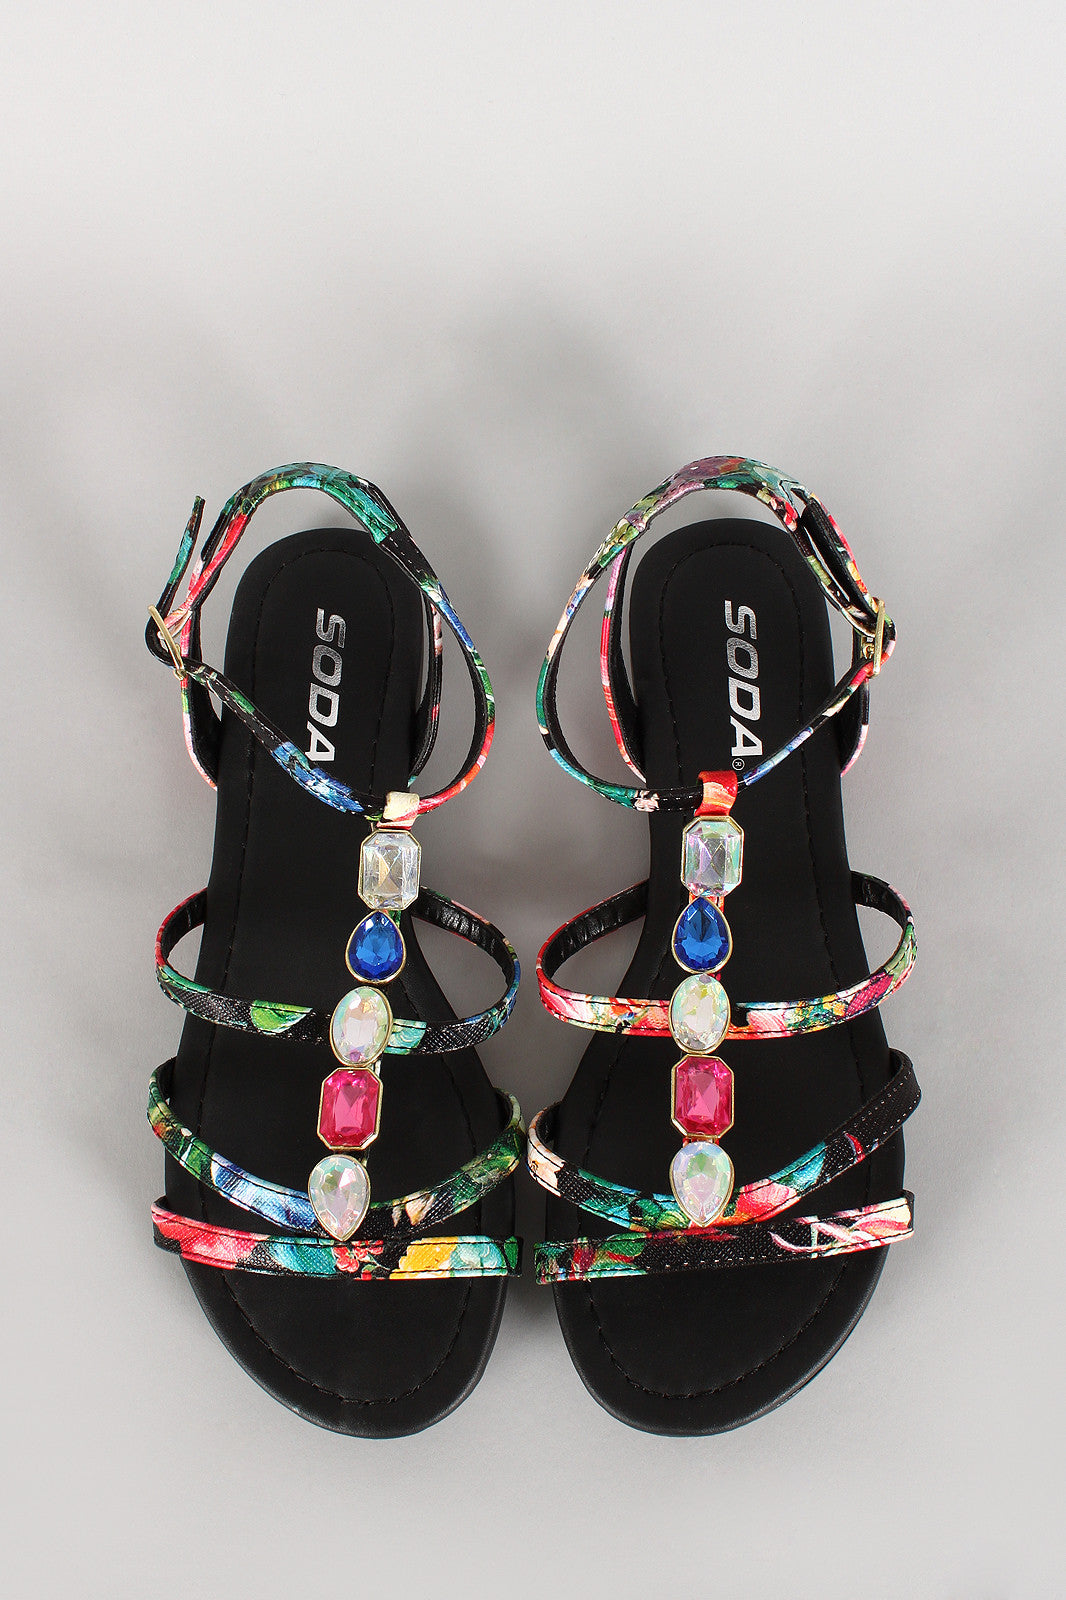 Soda Floral Jeweled Strappy Open Toe Flat Sandal - Thick 'N' Curvy Shop - 1